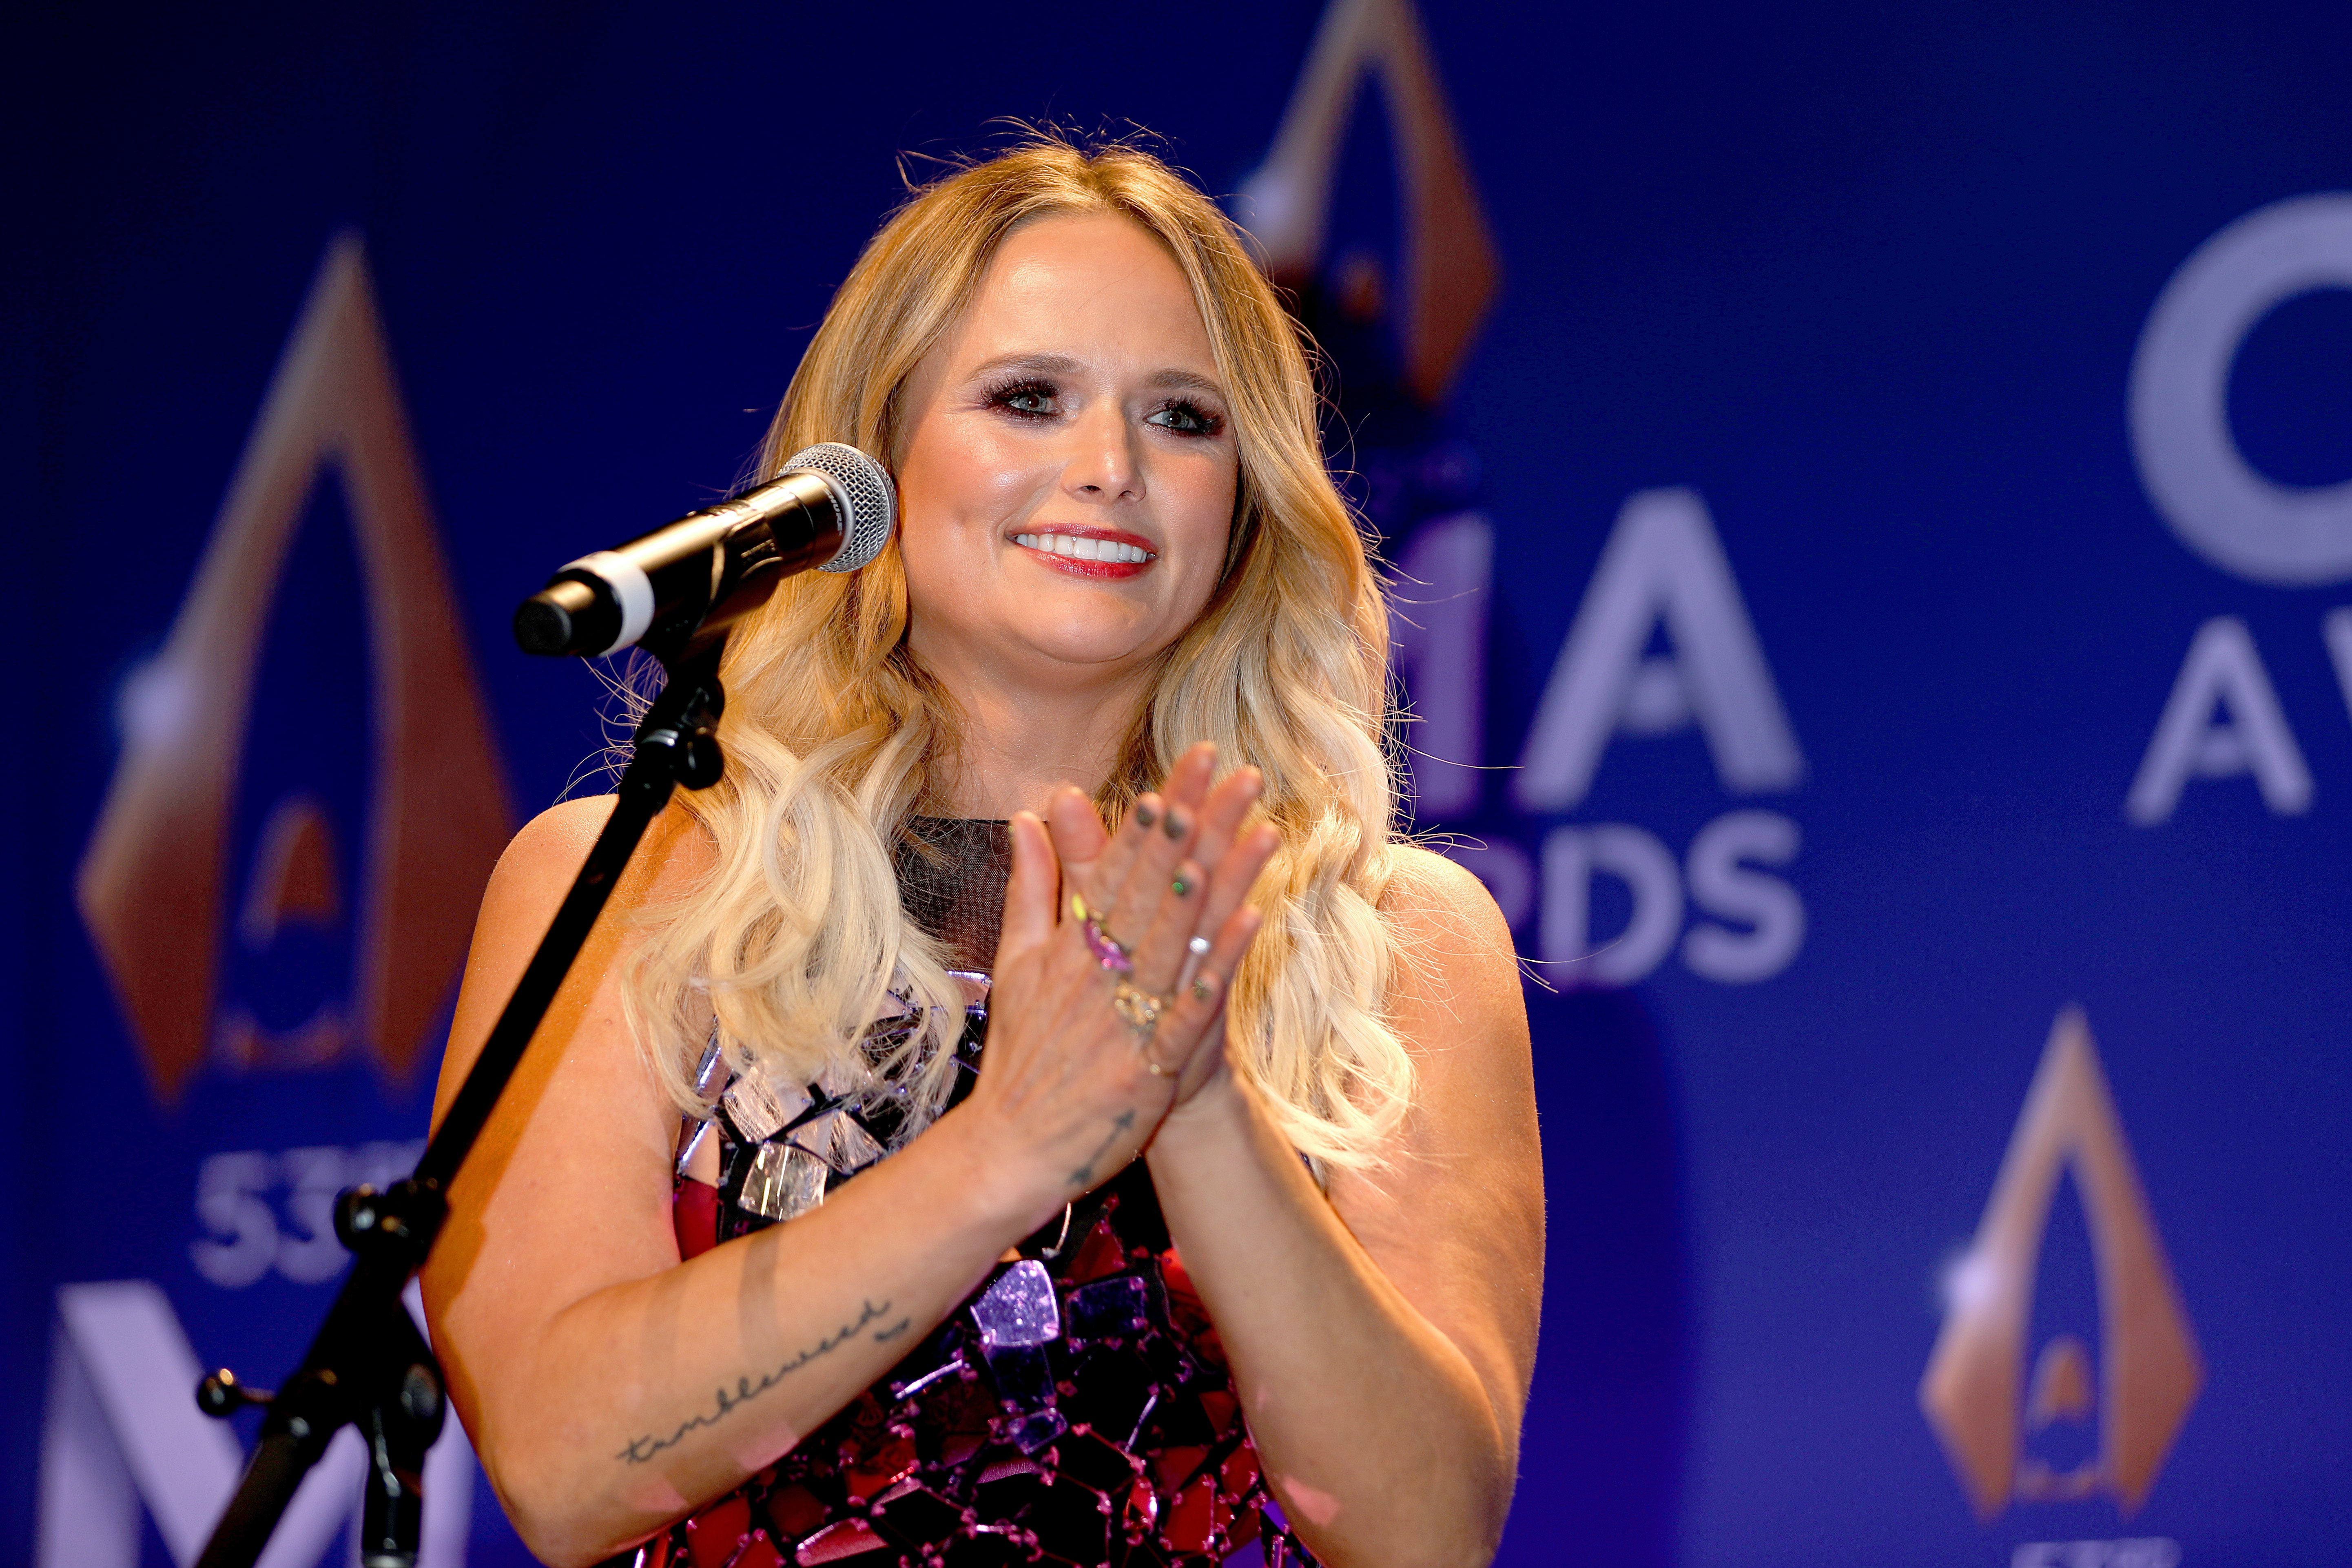 Miranda Lambert attends the 53rd annual CMA Awards on November 13, 2019, in Nashville, Tennessee. | Source: Getty Images.